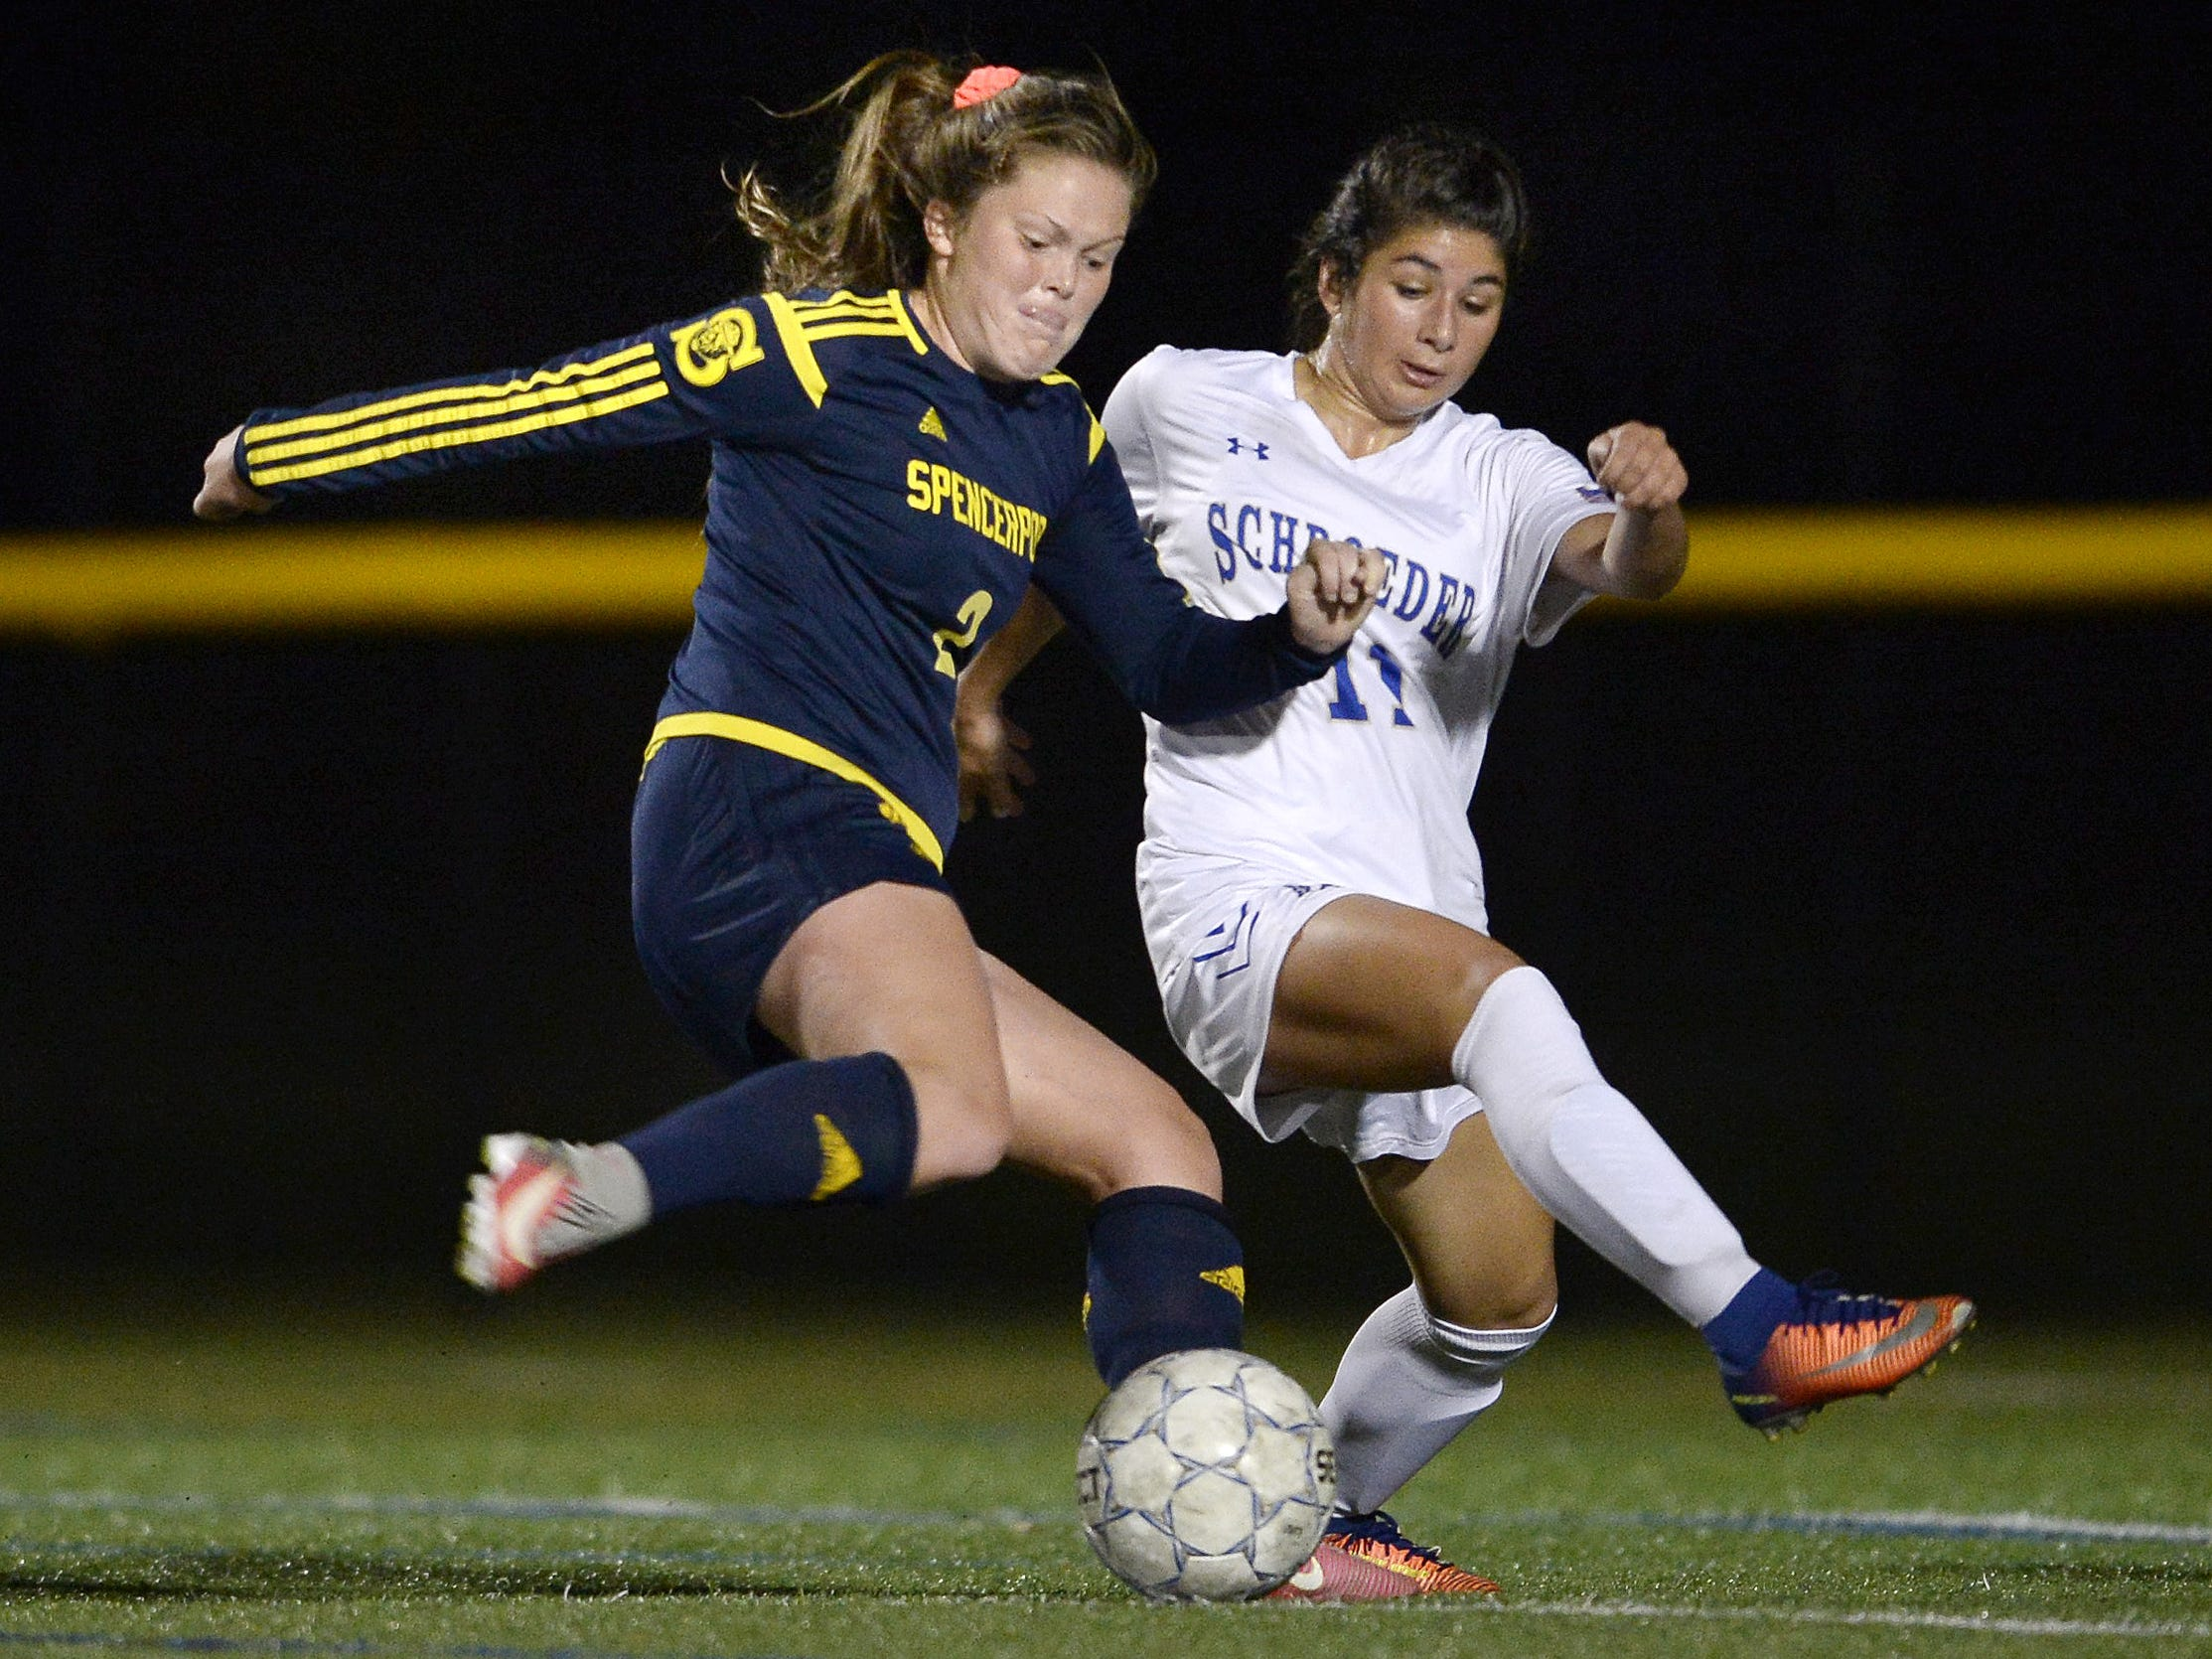 Spencerport's Erin Coykendall, left, winds up a shot on goal while defended by Webster Schroeder's Mikayla Morelli during a regular season game at Webster Schroeder High School on Tuesday, Oct. 10, 2017.